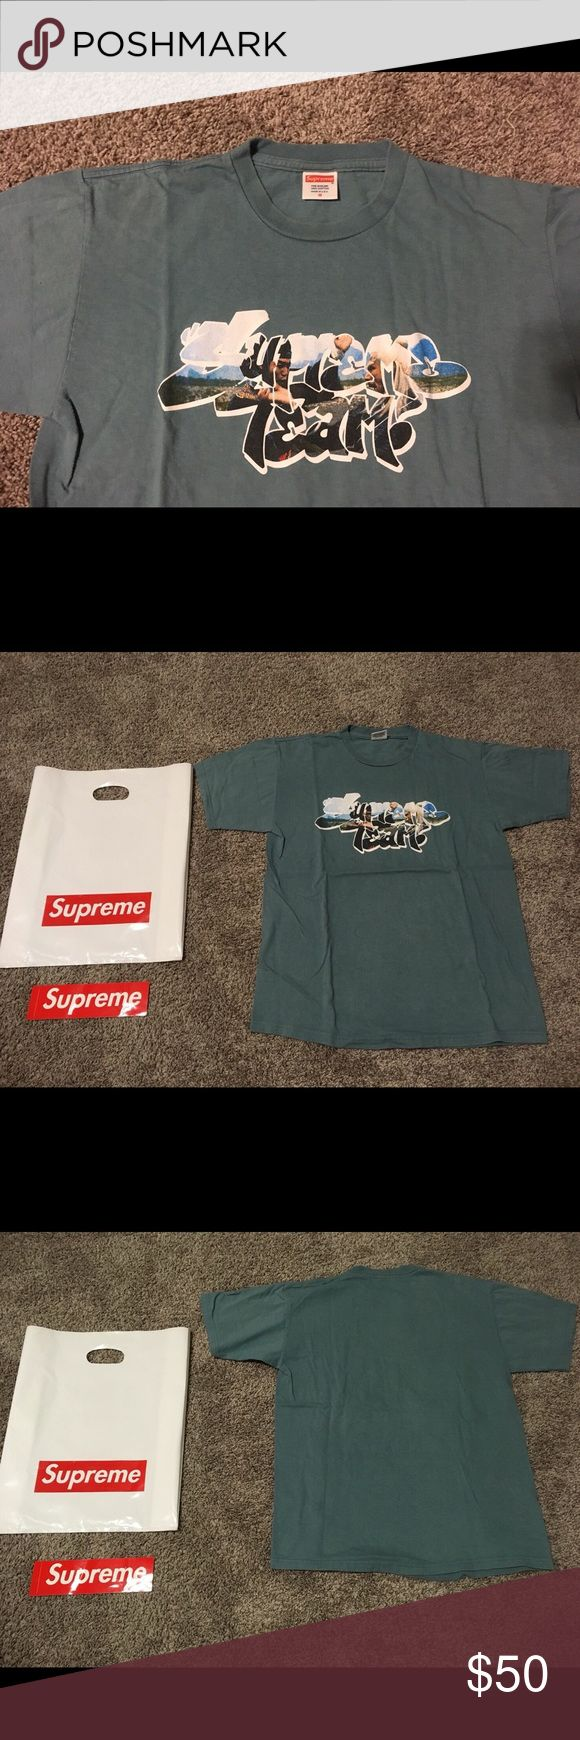 Supreme Tee It's used Supreme tee. I don't have any proof of authenticity but it's 100% authentic since I bought it from Supreme online shop. Supreme plastic bag and the sticker are included. Color is between blue and green. Condition is 7 out of 10. (10 is very good) Supreme Shirts Tees - Short Sleeve